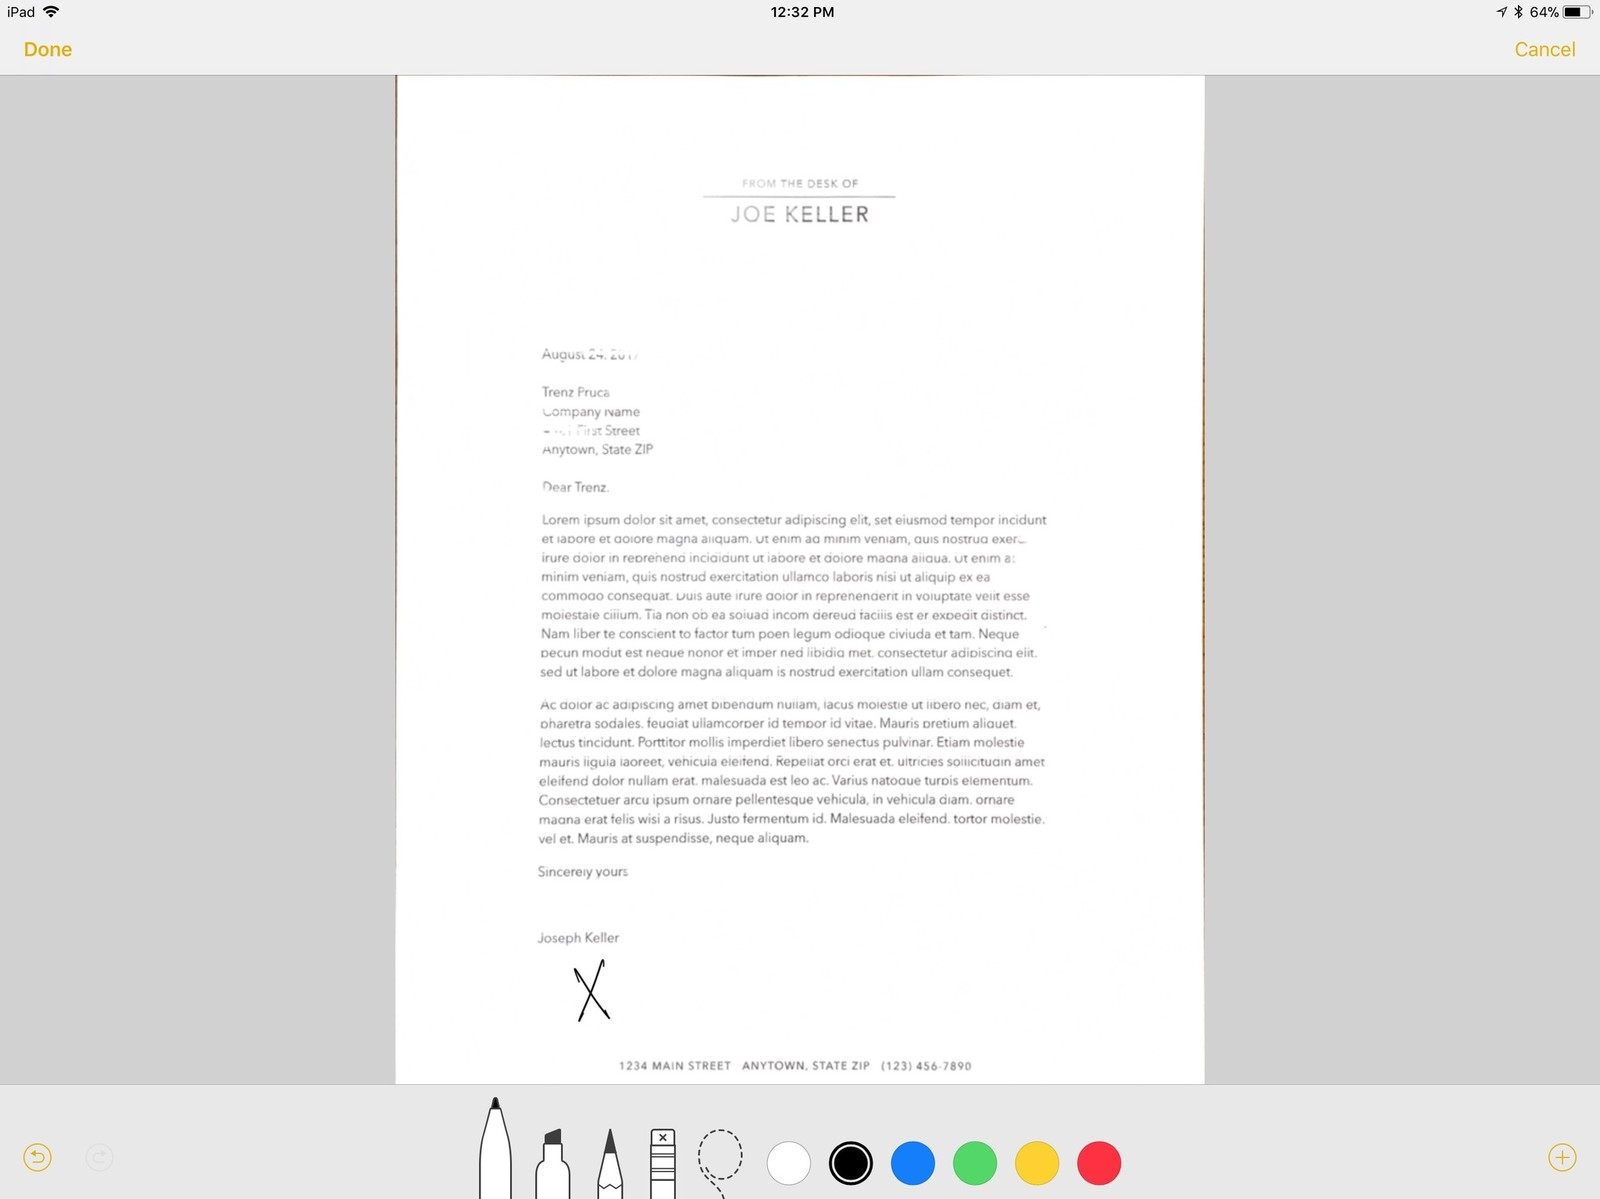 Best document signing apps for iPad: Sign and send, no pen and paper